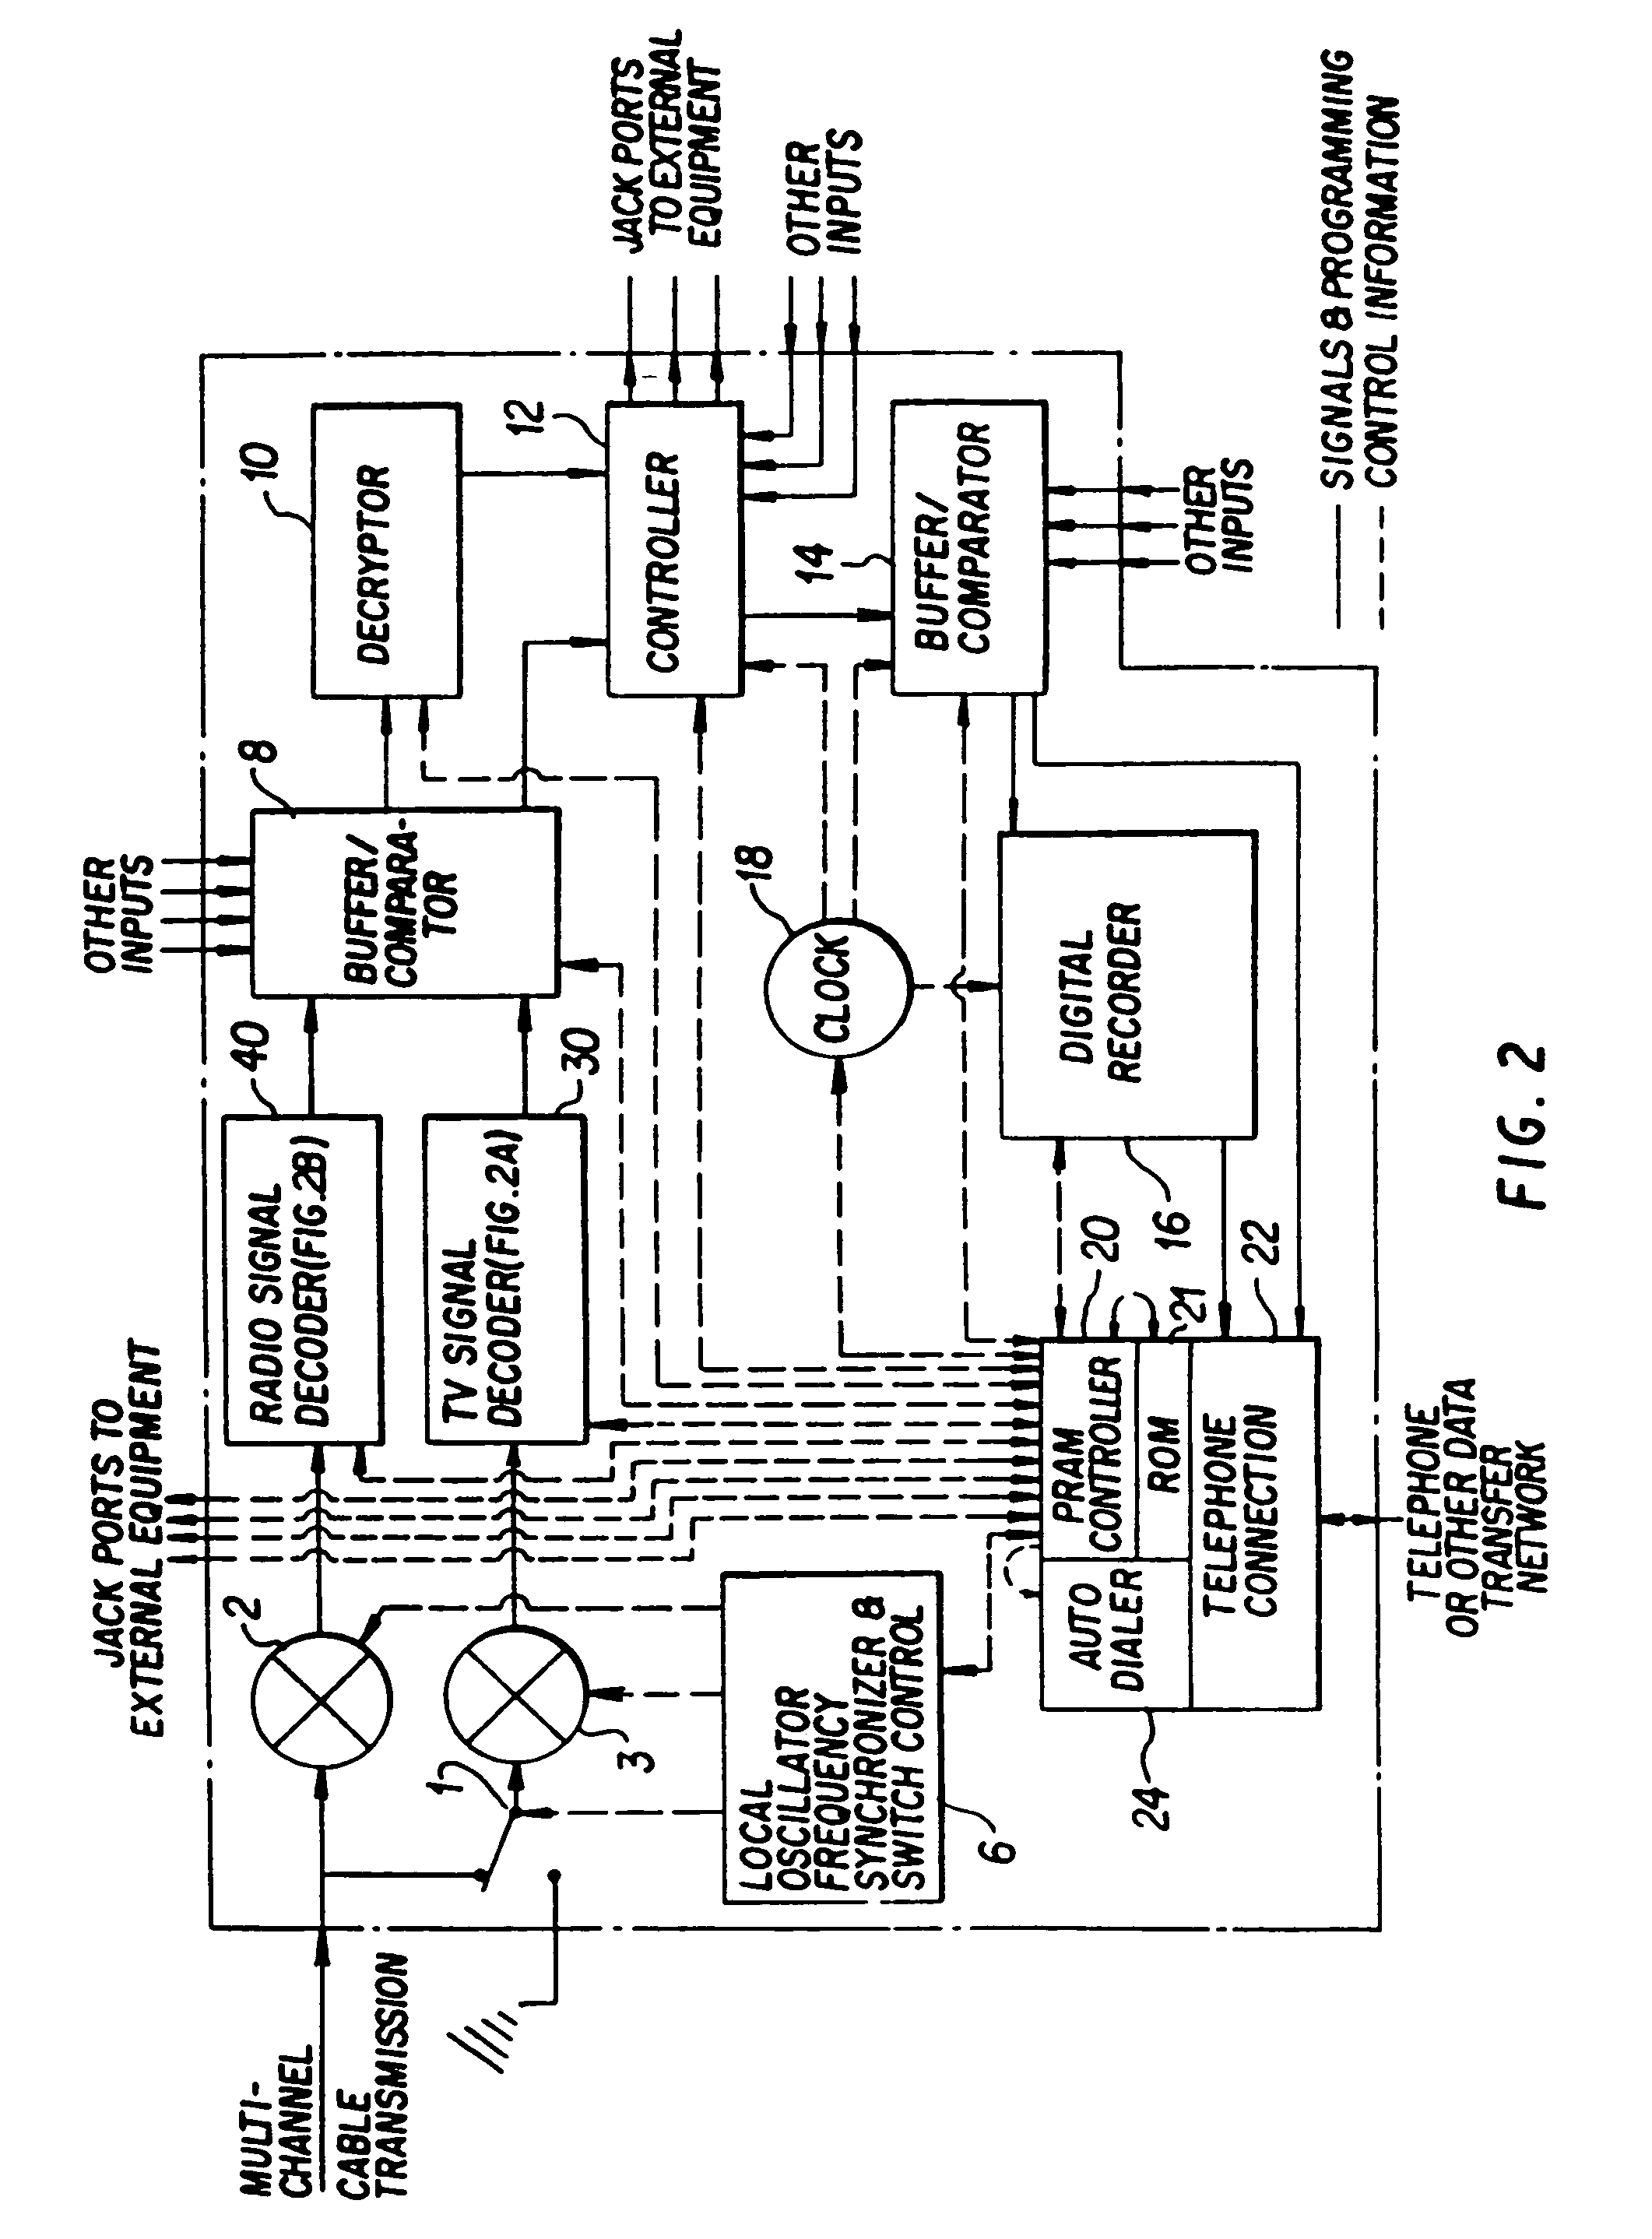 Schematic Century Battery Charger Wiring Diagram from static-cdn.imageservice.cloud